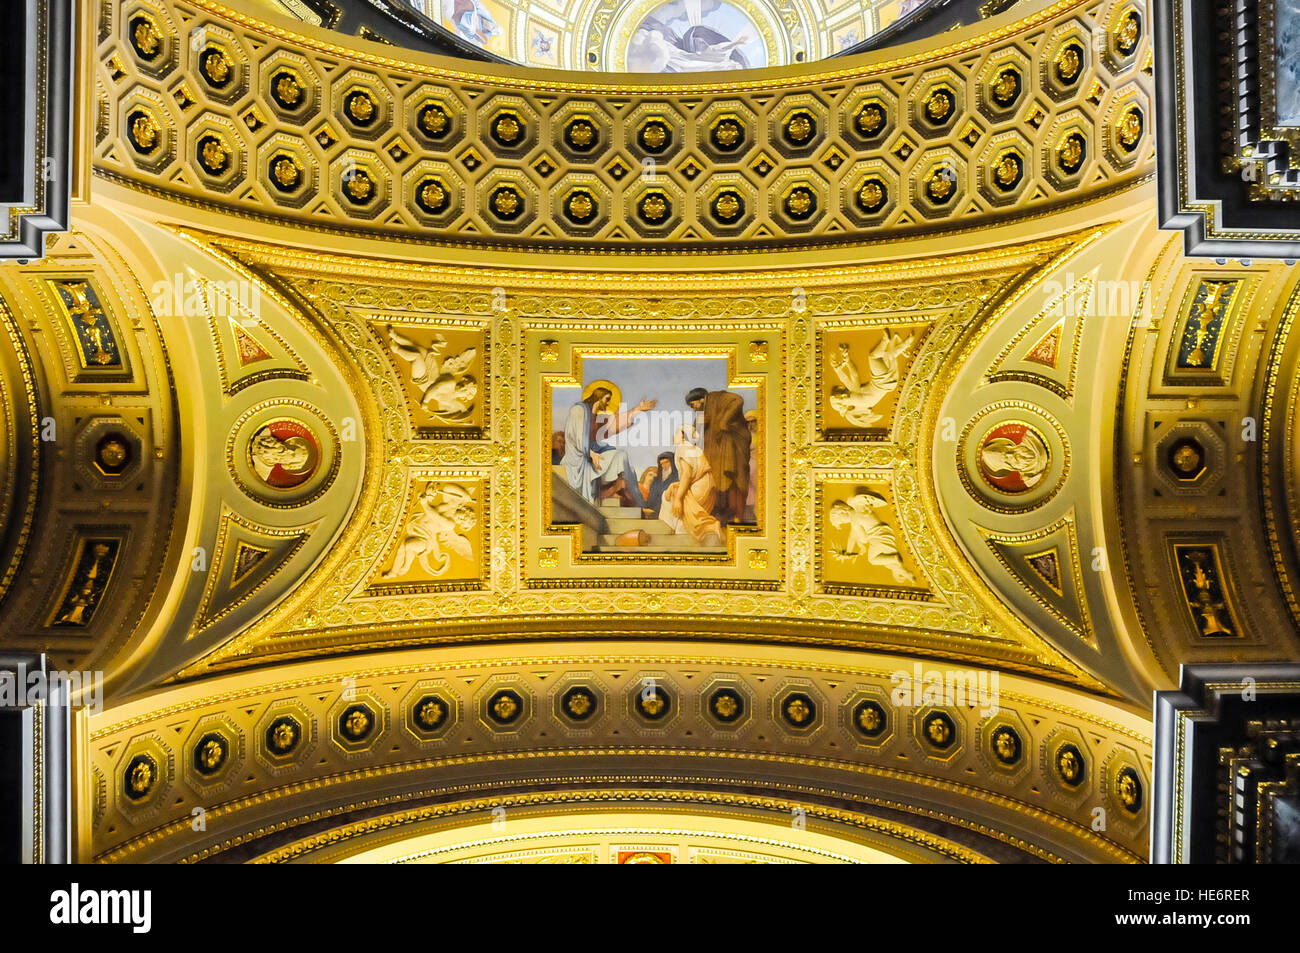 Painted plaster and guilded ceiling inside Saint Stephen's Basillica, Budapest. - Stock Image